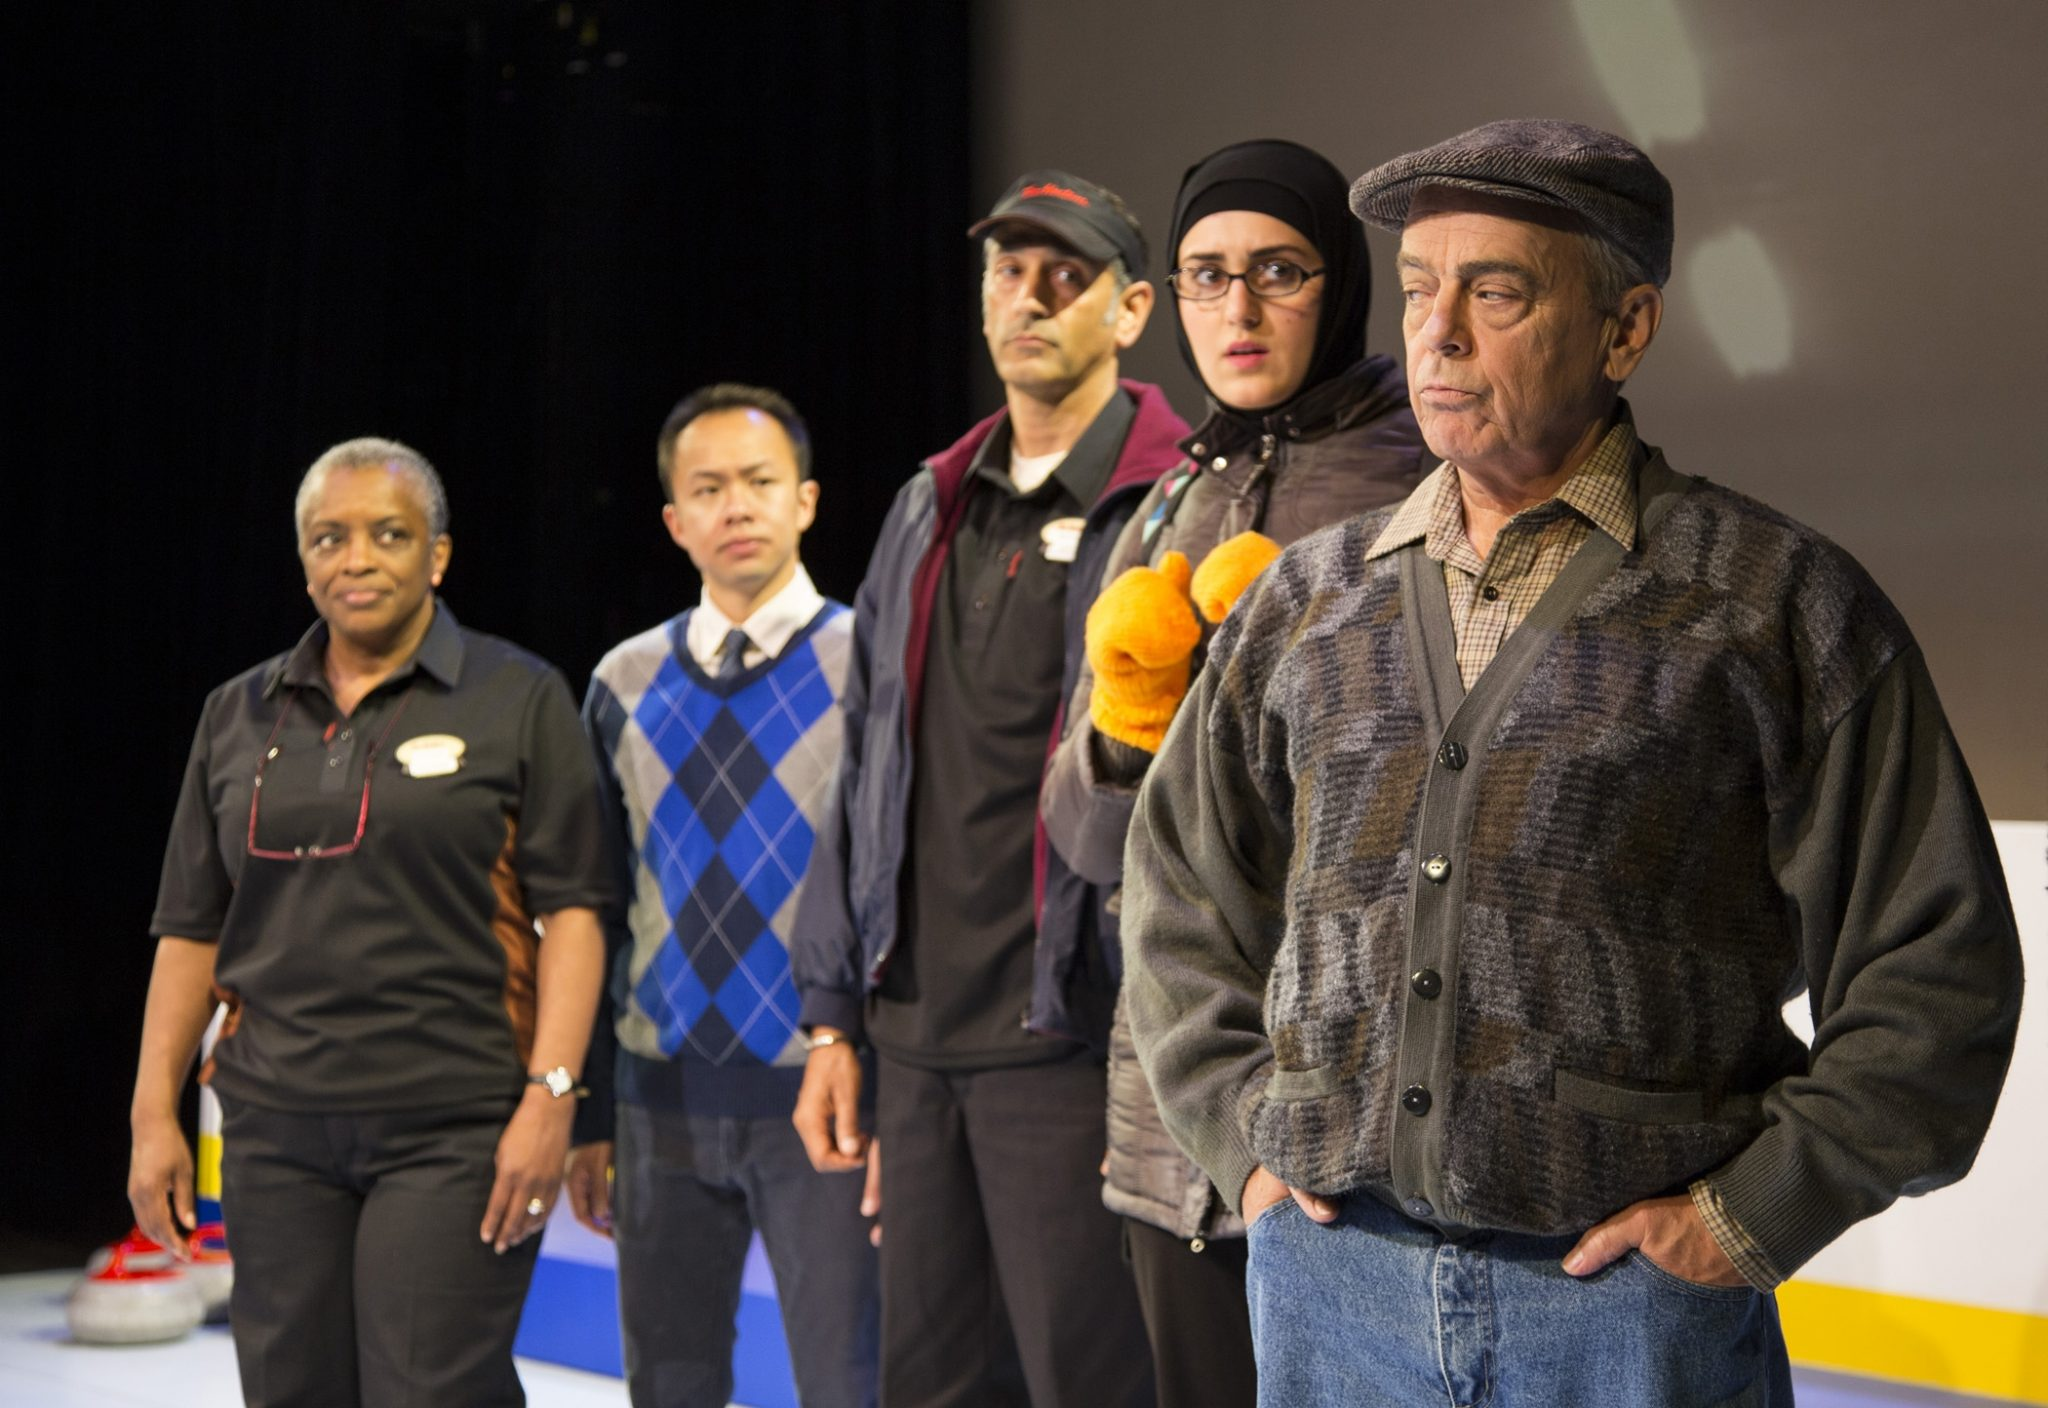 Marcia Johnson as Charmaine Bailey, Matthew Gin as Mike Chang, Omar Alex Khan as Anoopjeet Singh, Parmida Vand as Fatima Al-Sayeed, and Lorne Kennedy as Stuart MacPhail in The New Canadian Curling Club, a play written by Mark Crawford and directed by Miles Potter, which opens the 44th season of the Blyth Festival on June 22. Photo credit: Terry Manzo.